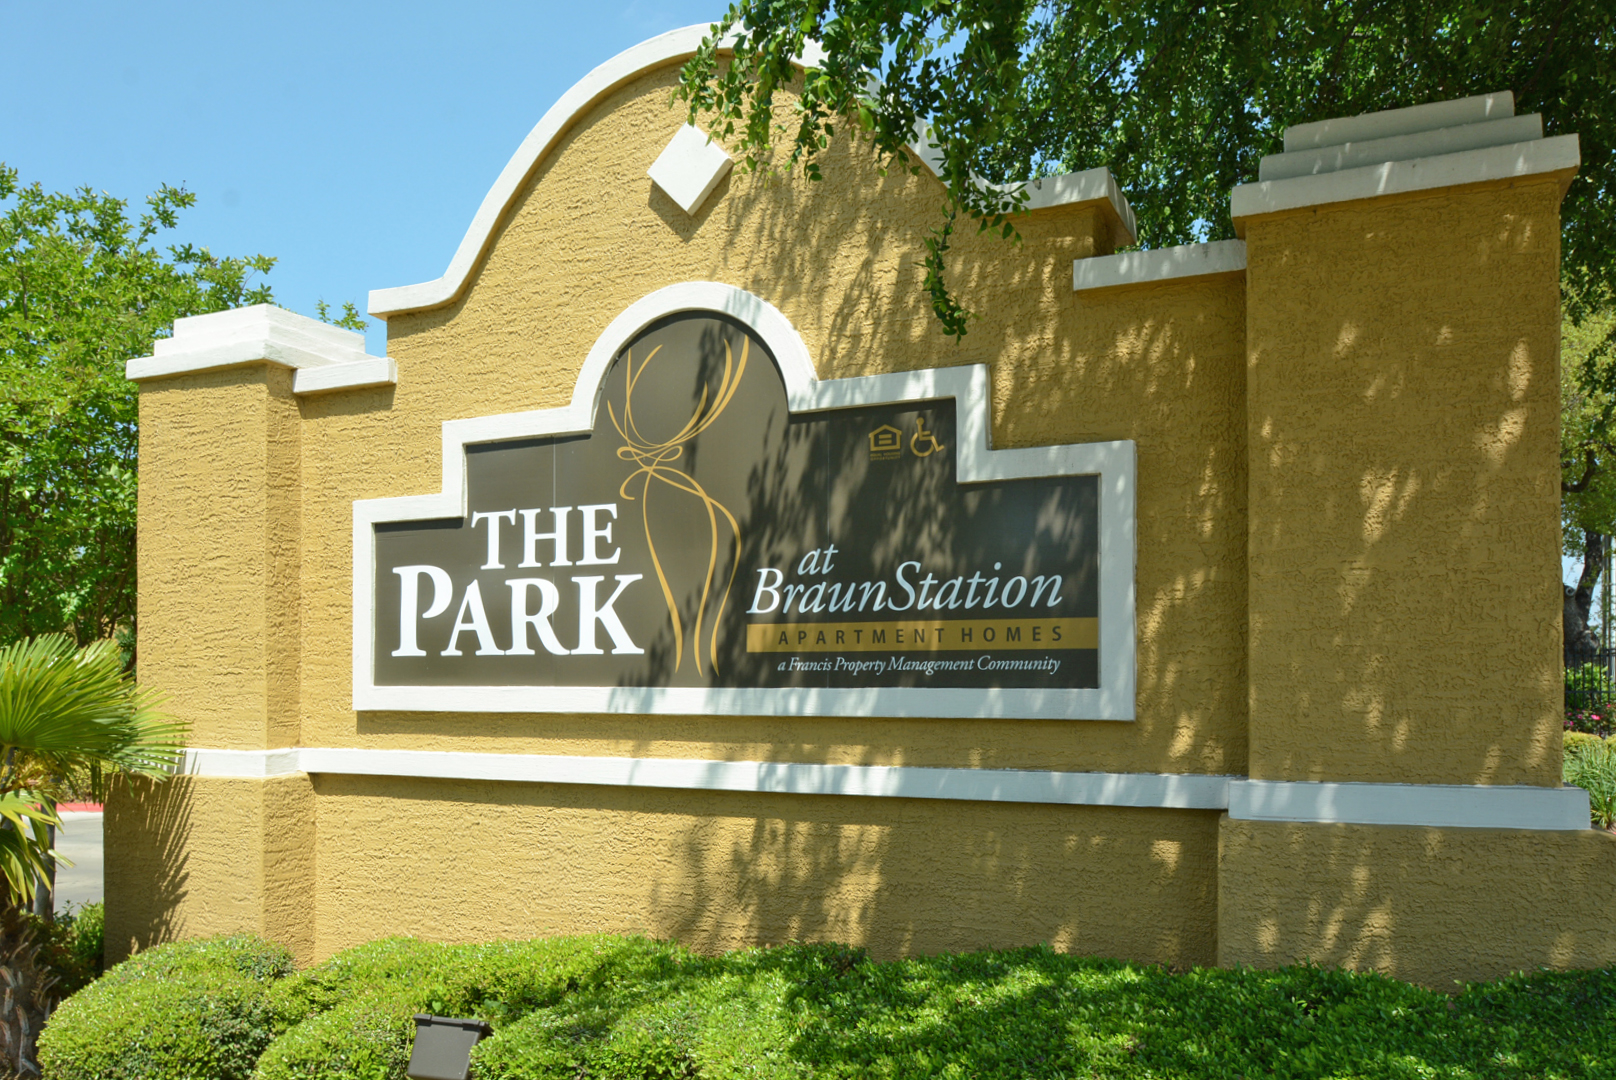 The Park at Braun Station